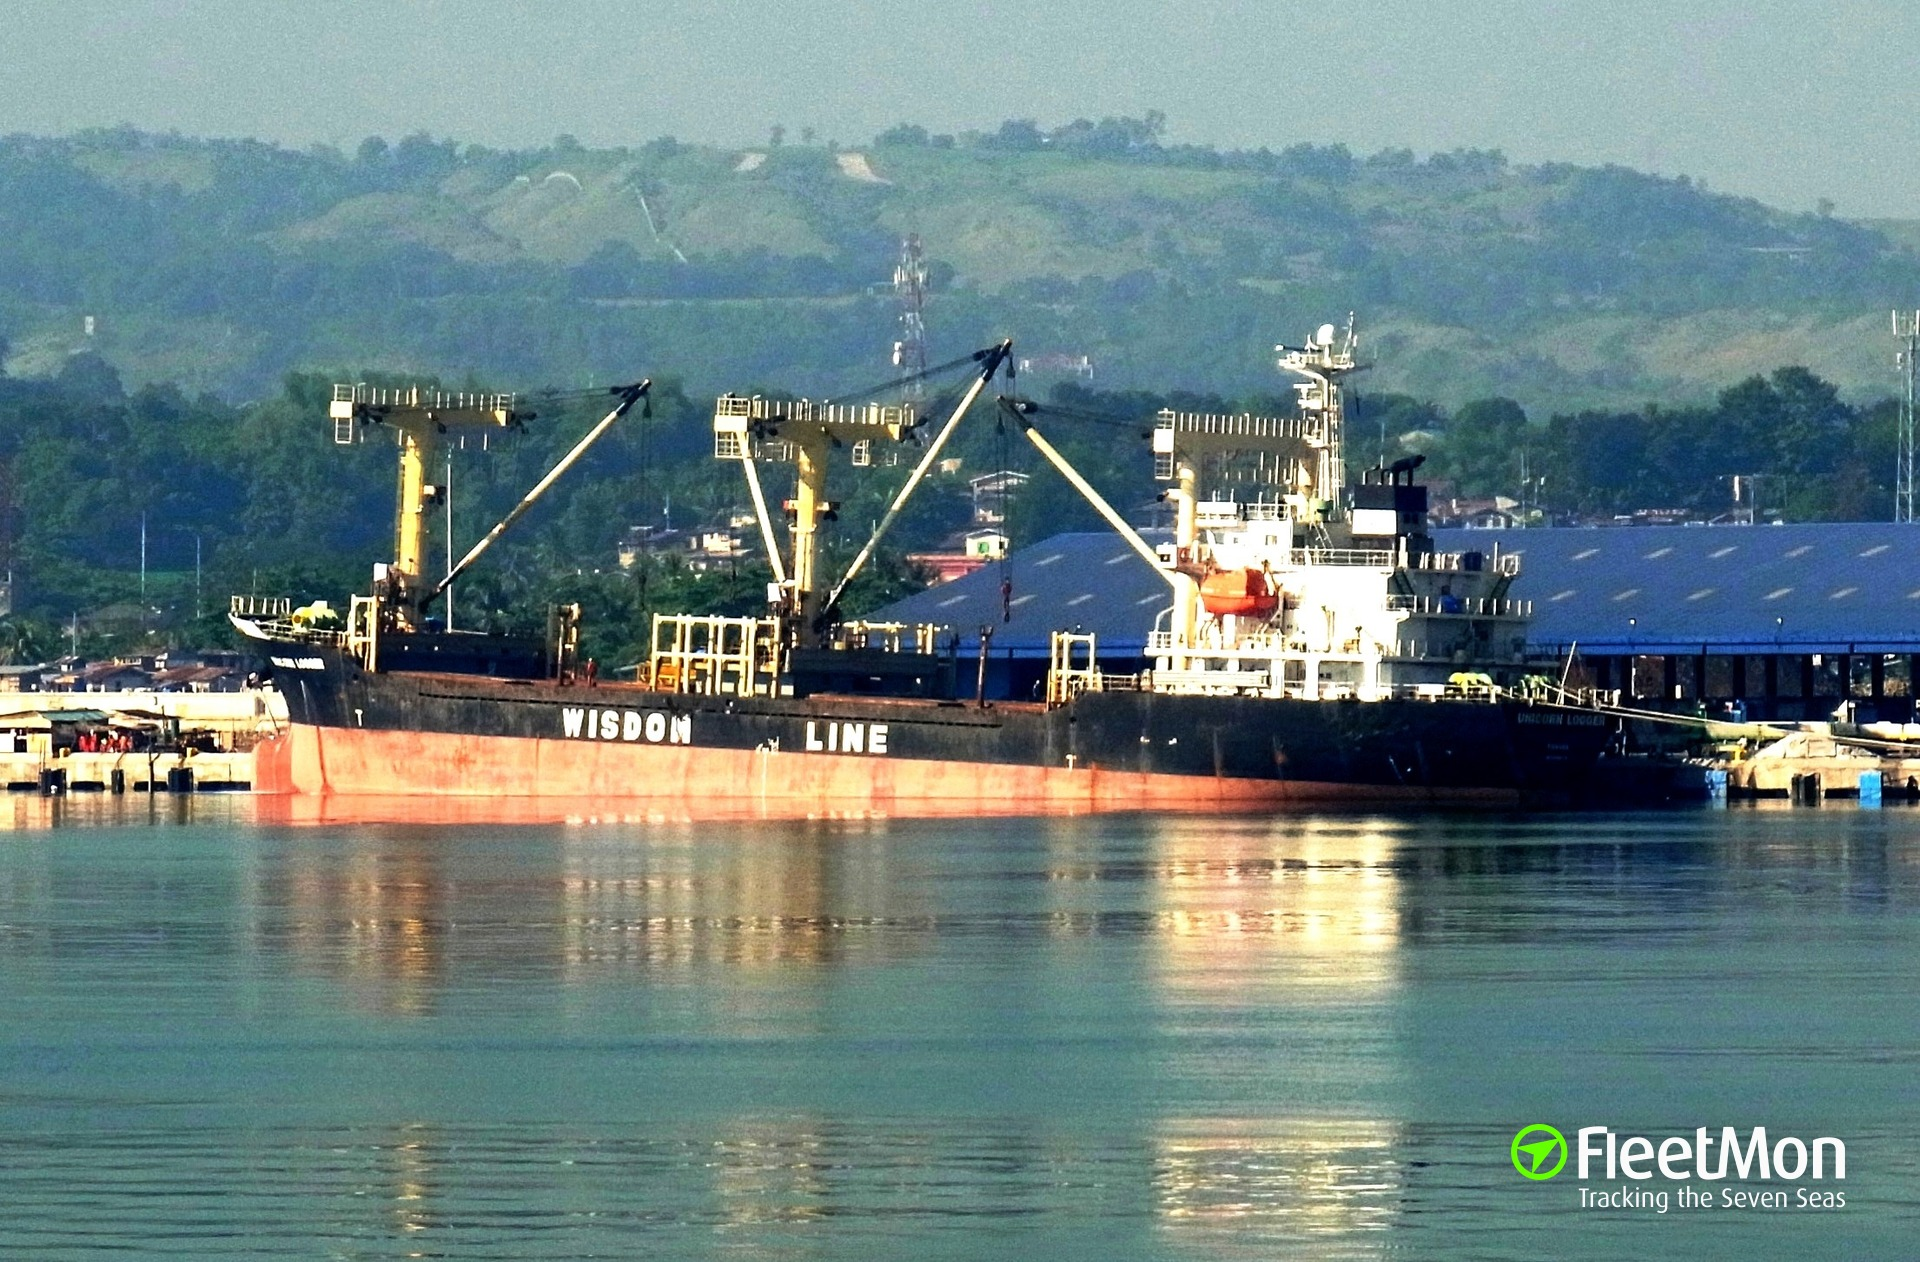 Taiwanese freighter Unicorn Logger aground on coral reefs, Visayan sea, Philippine